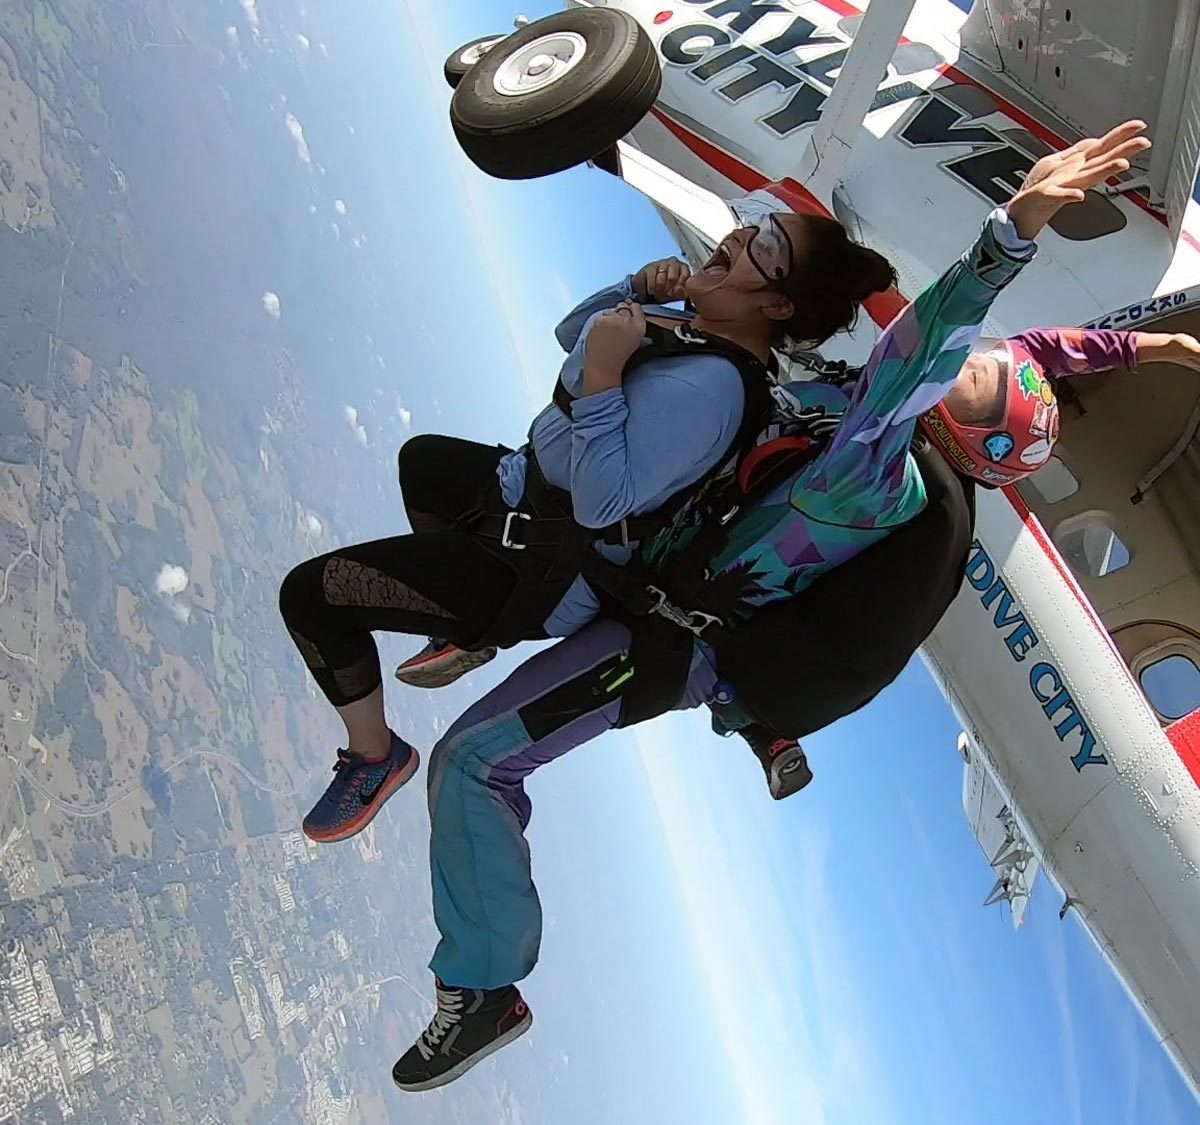 Women tandem jumper exiting Skydive City aircraft into freefall